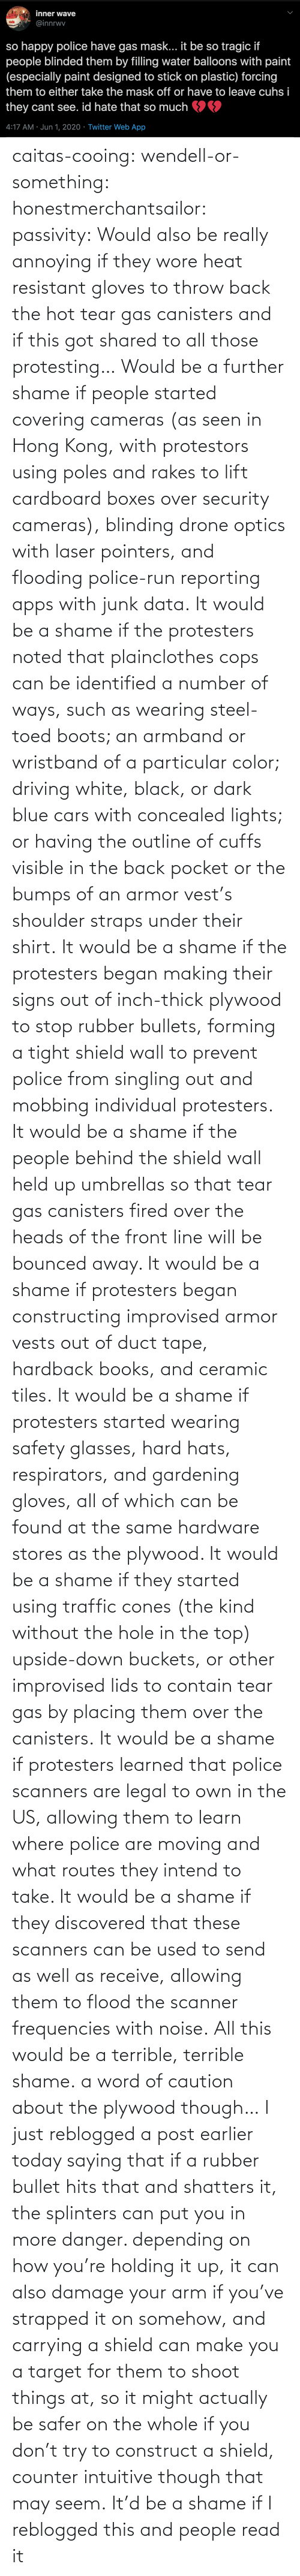 hats: caitas-cooing:  wendell-or-something: honestmerchantsailor:  passivity: Would also be really annoying if they wore heat resistant gloves to throw back the hot tear gas canisters and if this got shared to all those protesting… Would be a further shame if people started covering cameras (as seen in Hong Kong, with protestors using poles and rakes to lift cardboard boxes over security cameras), blinding drone optics with laser pointers, and flooding police-run reporting apps with junk data. It would be a shame if the protesters noted that plainclothes cops can be identified a number of ways, such as wearing steel-toed boots; an armband or wristband of a particular color; driving white, black, or dark blue cars with concealed lights; or having the outline of cuffs visible in the back pocket or the bumps of an armor vest's shoulder straps under their shirt. It would be a shame if the protesters began making their signs out of inch-thick plywood to stop rubber bullets, forming a tight shield wall to prevent police from singling out and mobbing individual protesters. It would be a shame if the people behind the shield wall held up umbrellas so that tear gas canisters fired over the heads of the front line will be bounced away. It would be a shame if protesters began constructing improvised armor vests out of duct tape, hardback books, and ceramic tiles. It would be a shame if protesters started wearing safety glasses, hard hats, respirators, and gardening gloves, all of which can be found at the same hardware stores as the plywood. It would be a shame if they started using traffic cones (the kind without the hole in the top) upside-down buckets, or other improvised lids to contain tear gas by placing them over the canisters. It would be a shame if protesters learned that police scanners are legal to own in the US, allowing them to learn where police are moving and what routes they intend to take. It would be a shame if they discovered that these scanners can be used to send as well as receive, allowing them to flood the scanner frequencies with noise. All this would be a terrible, terrible shame.    a word of caution about the plywood though… I just reblogged a post earlier today saying that if a rubber bullet hits that and shatters it, the splinters can put you in more danger. depending on how you're holding it up, it can also damage your arm if you've strapped it on somehow, and carrying a shield can make you a target for them to shoot things at, so it might actually be safer on the whole if you don't try to construct a shield, counter intuitive though that may seem.    It'd be a shame if I reblogged this and people read it